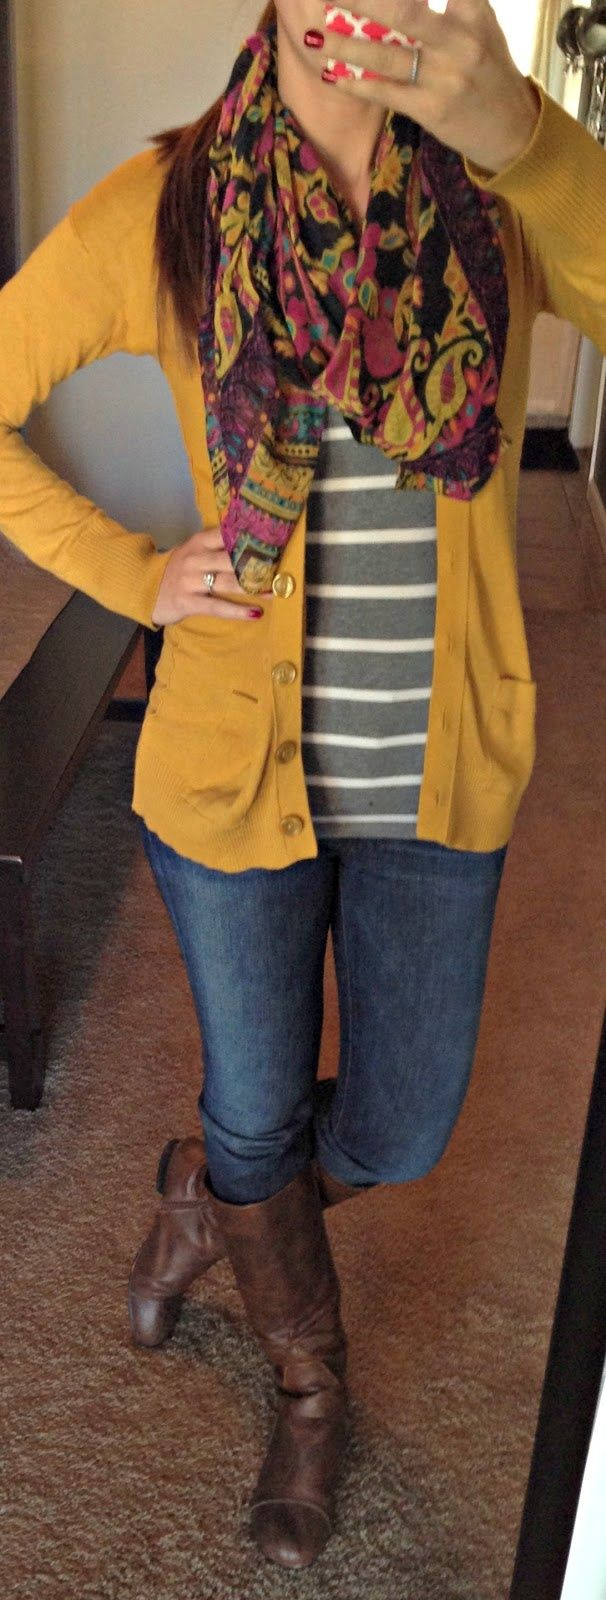 mustard yellow cardigan with mixed prints. cute.